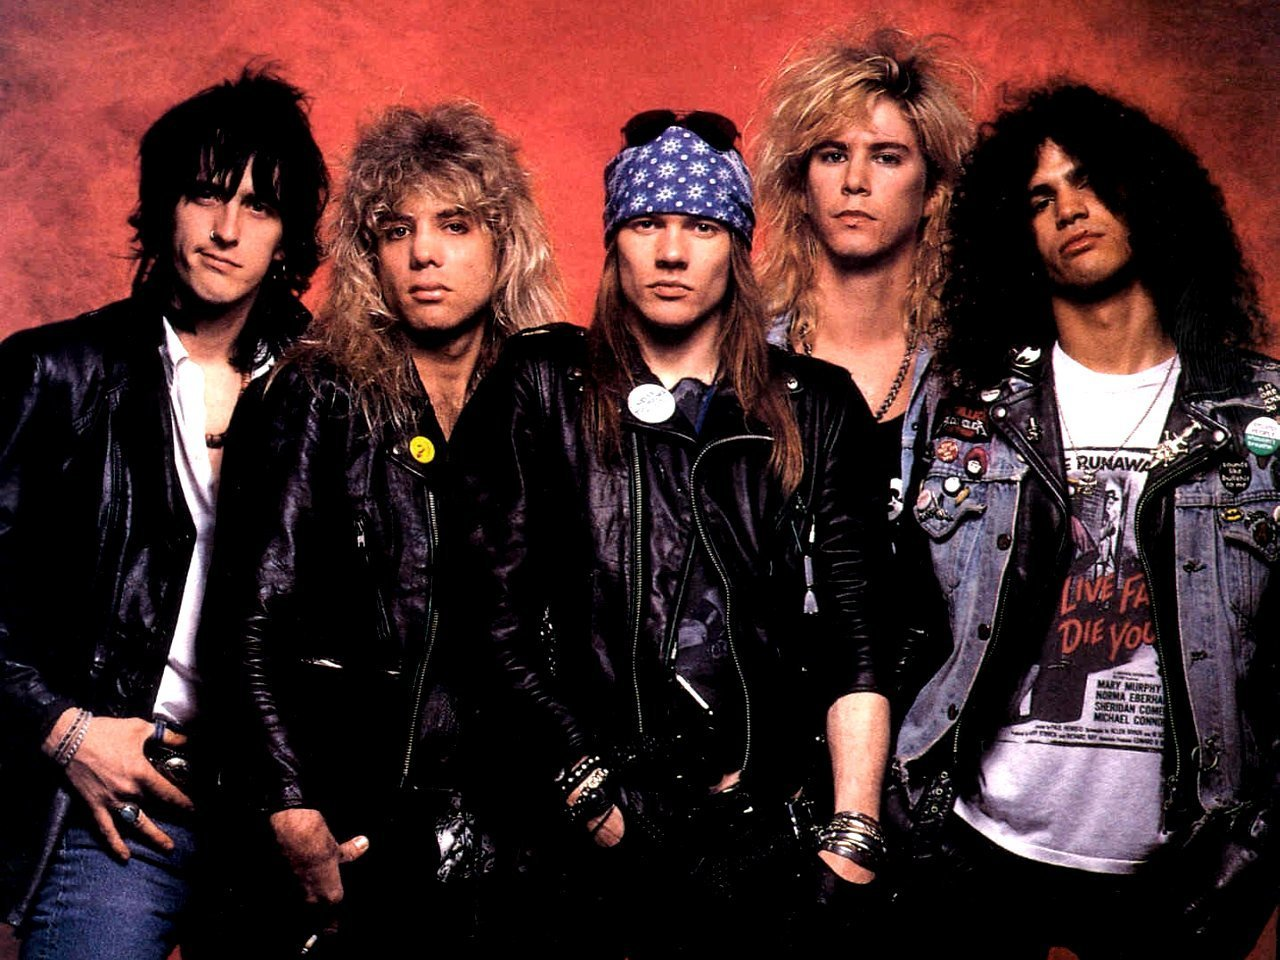 Guns_N_Roses_old photo.jpg